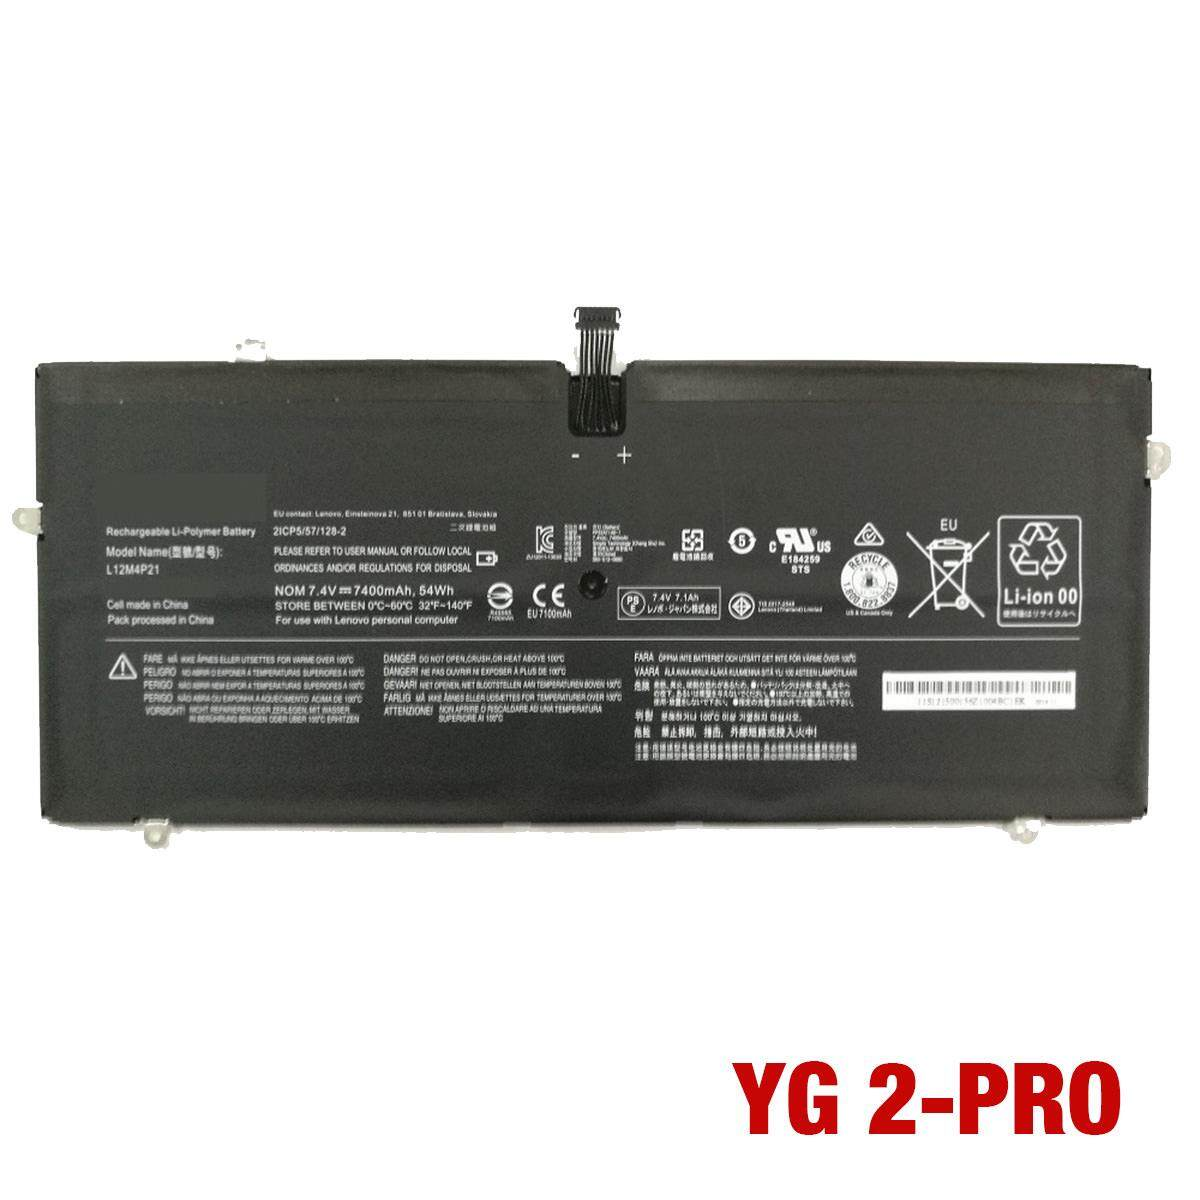 Laptop Replacement Battery for Lenovo IdeaPad Yoga 2 Pro Malaysia